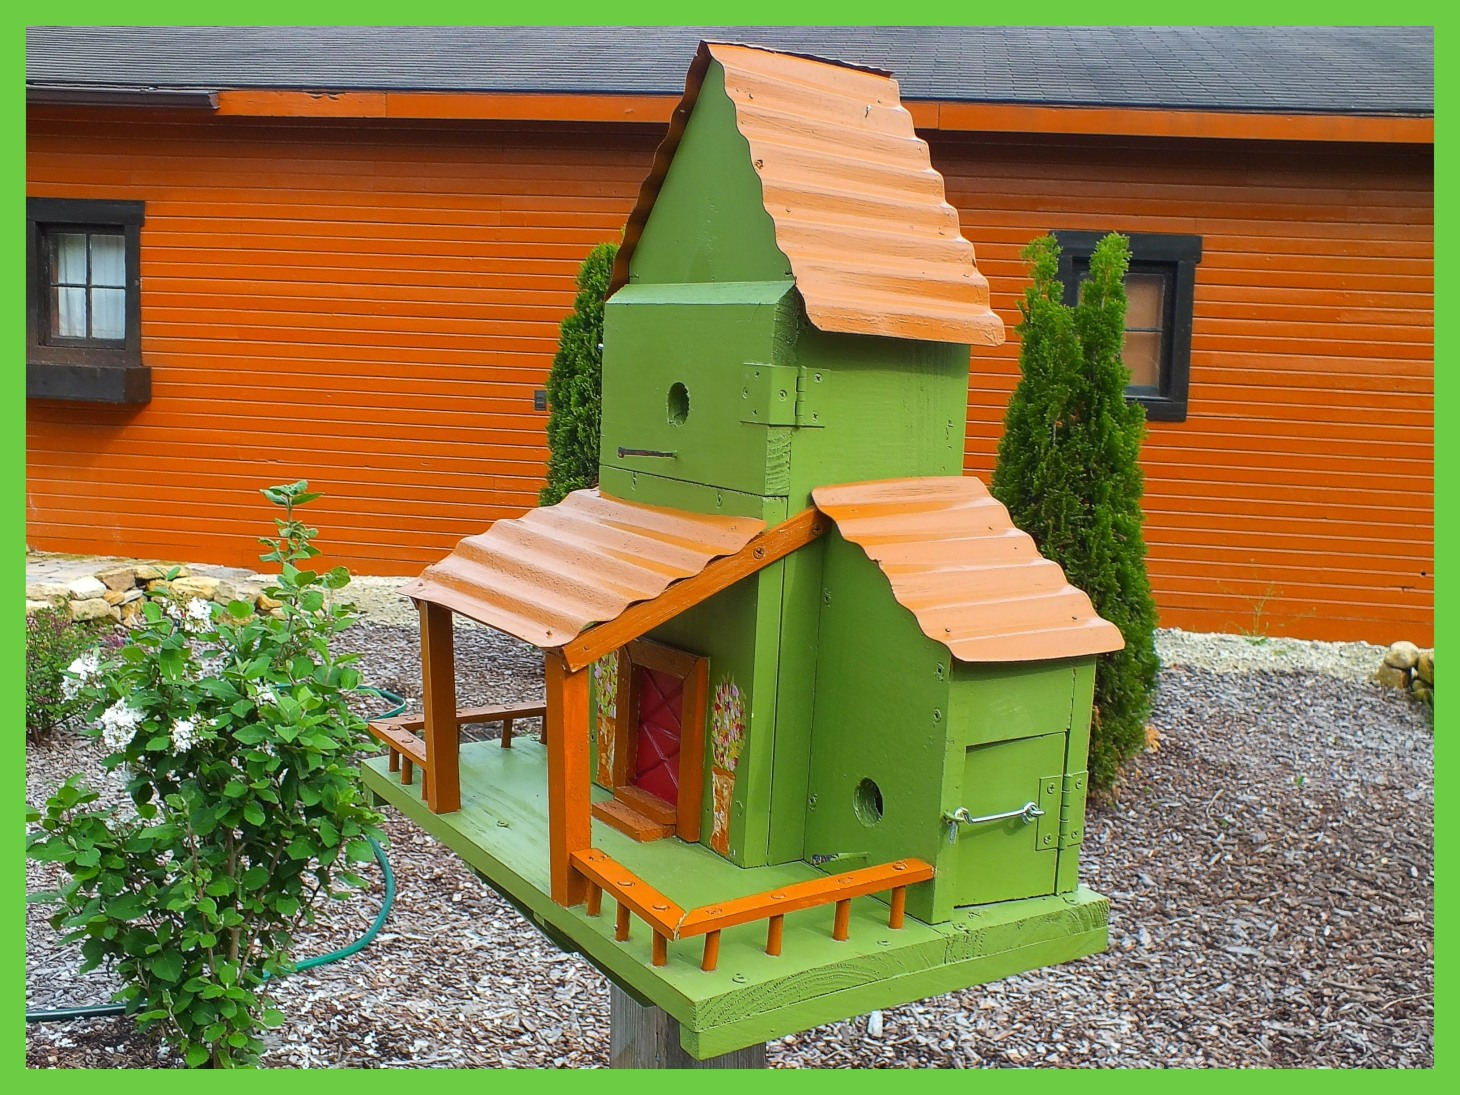 Birdhouse (4... At my sister-in-law Mary's place.) Photo by Thomas Peace c. 2015